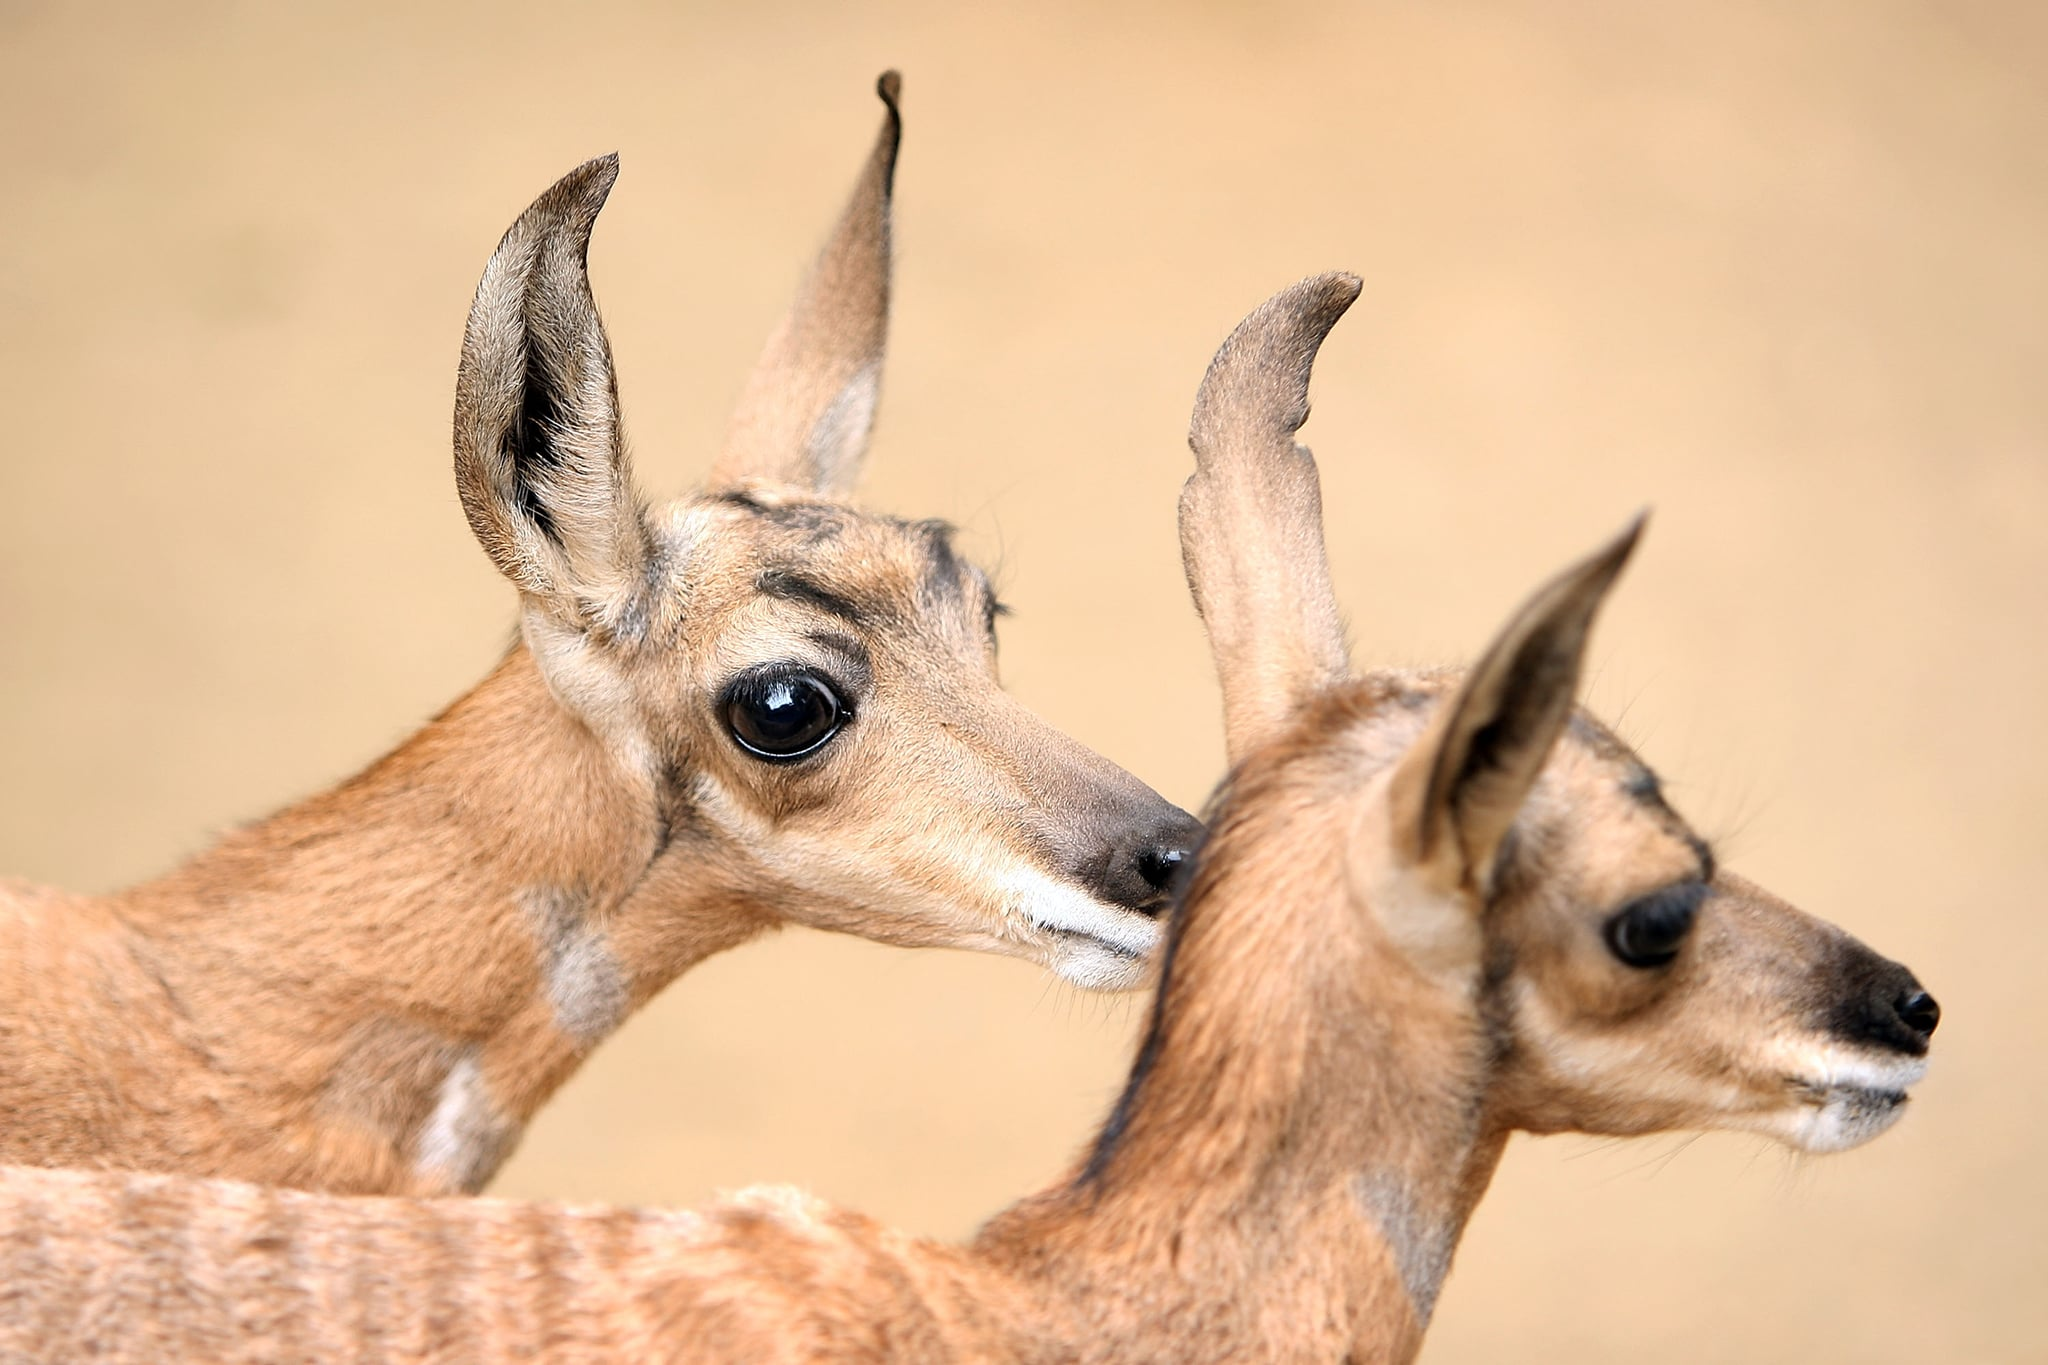 Once a regular sight in Baja, CA, the Peninsular pronghorn now numbers about 250 in the wild. The only US institution to intensively breed this species, the Los Angeles Zoo now boasts the birth of three pairs of these leggy creatures.